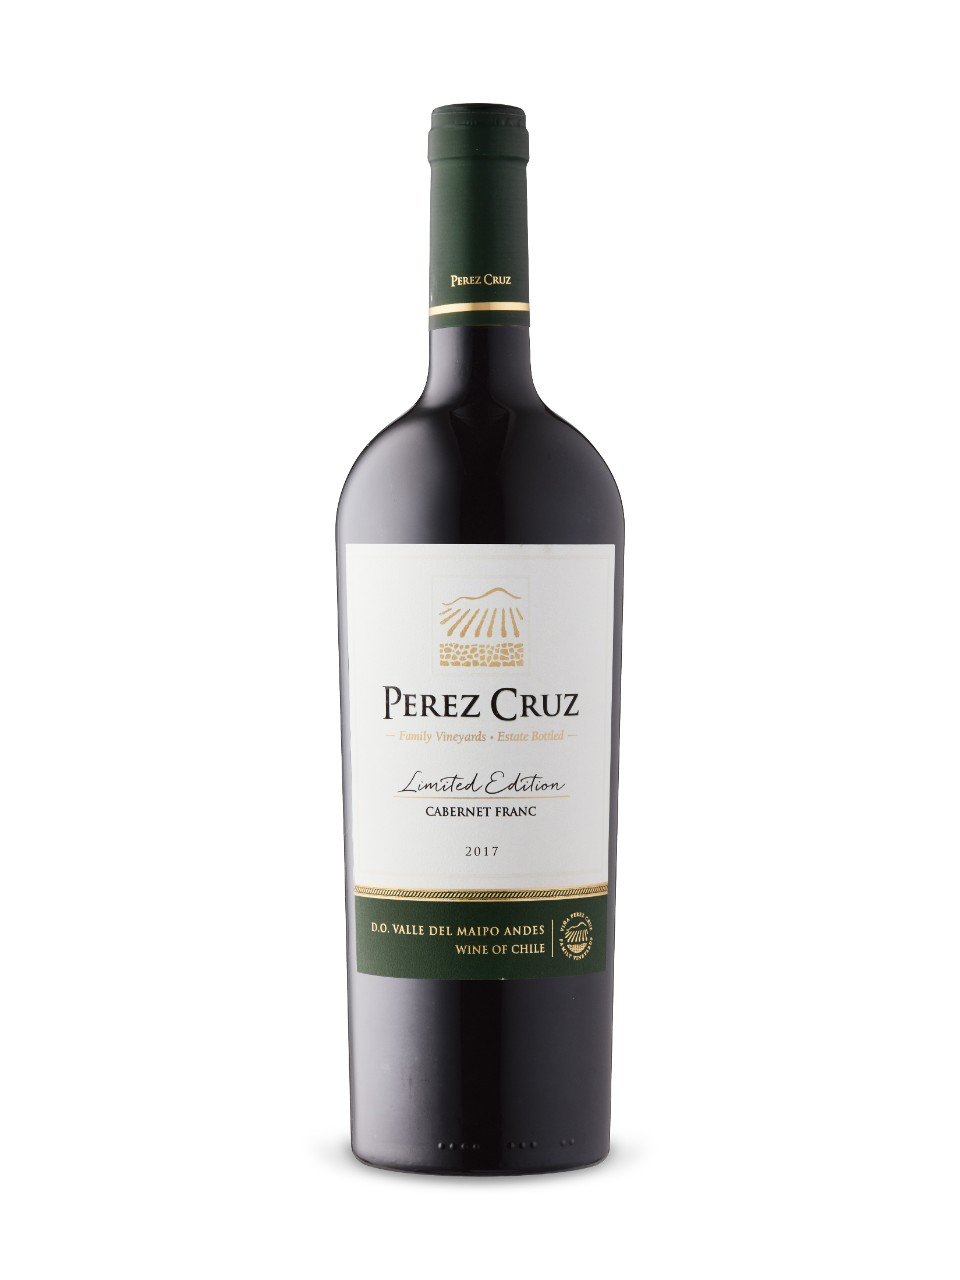 Pérez Cruz Limited Edition Cabernet Franc 2017 from LCBO